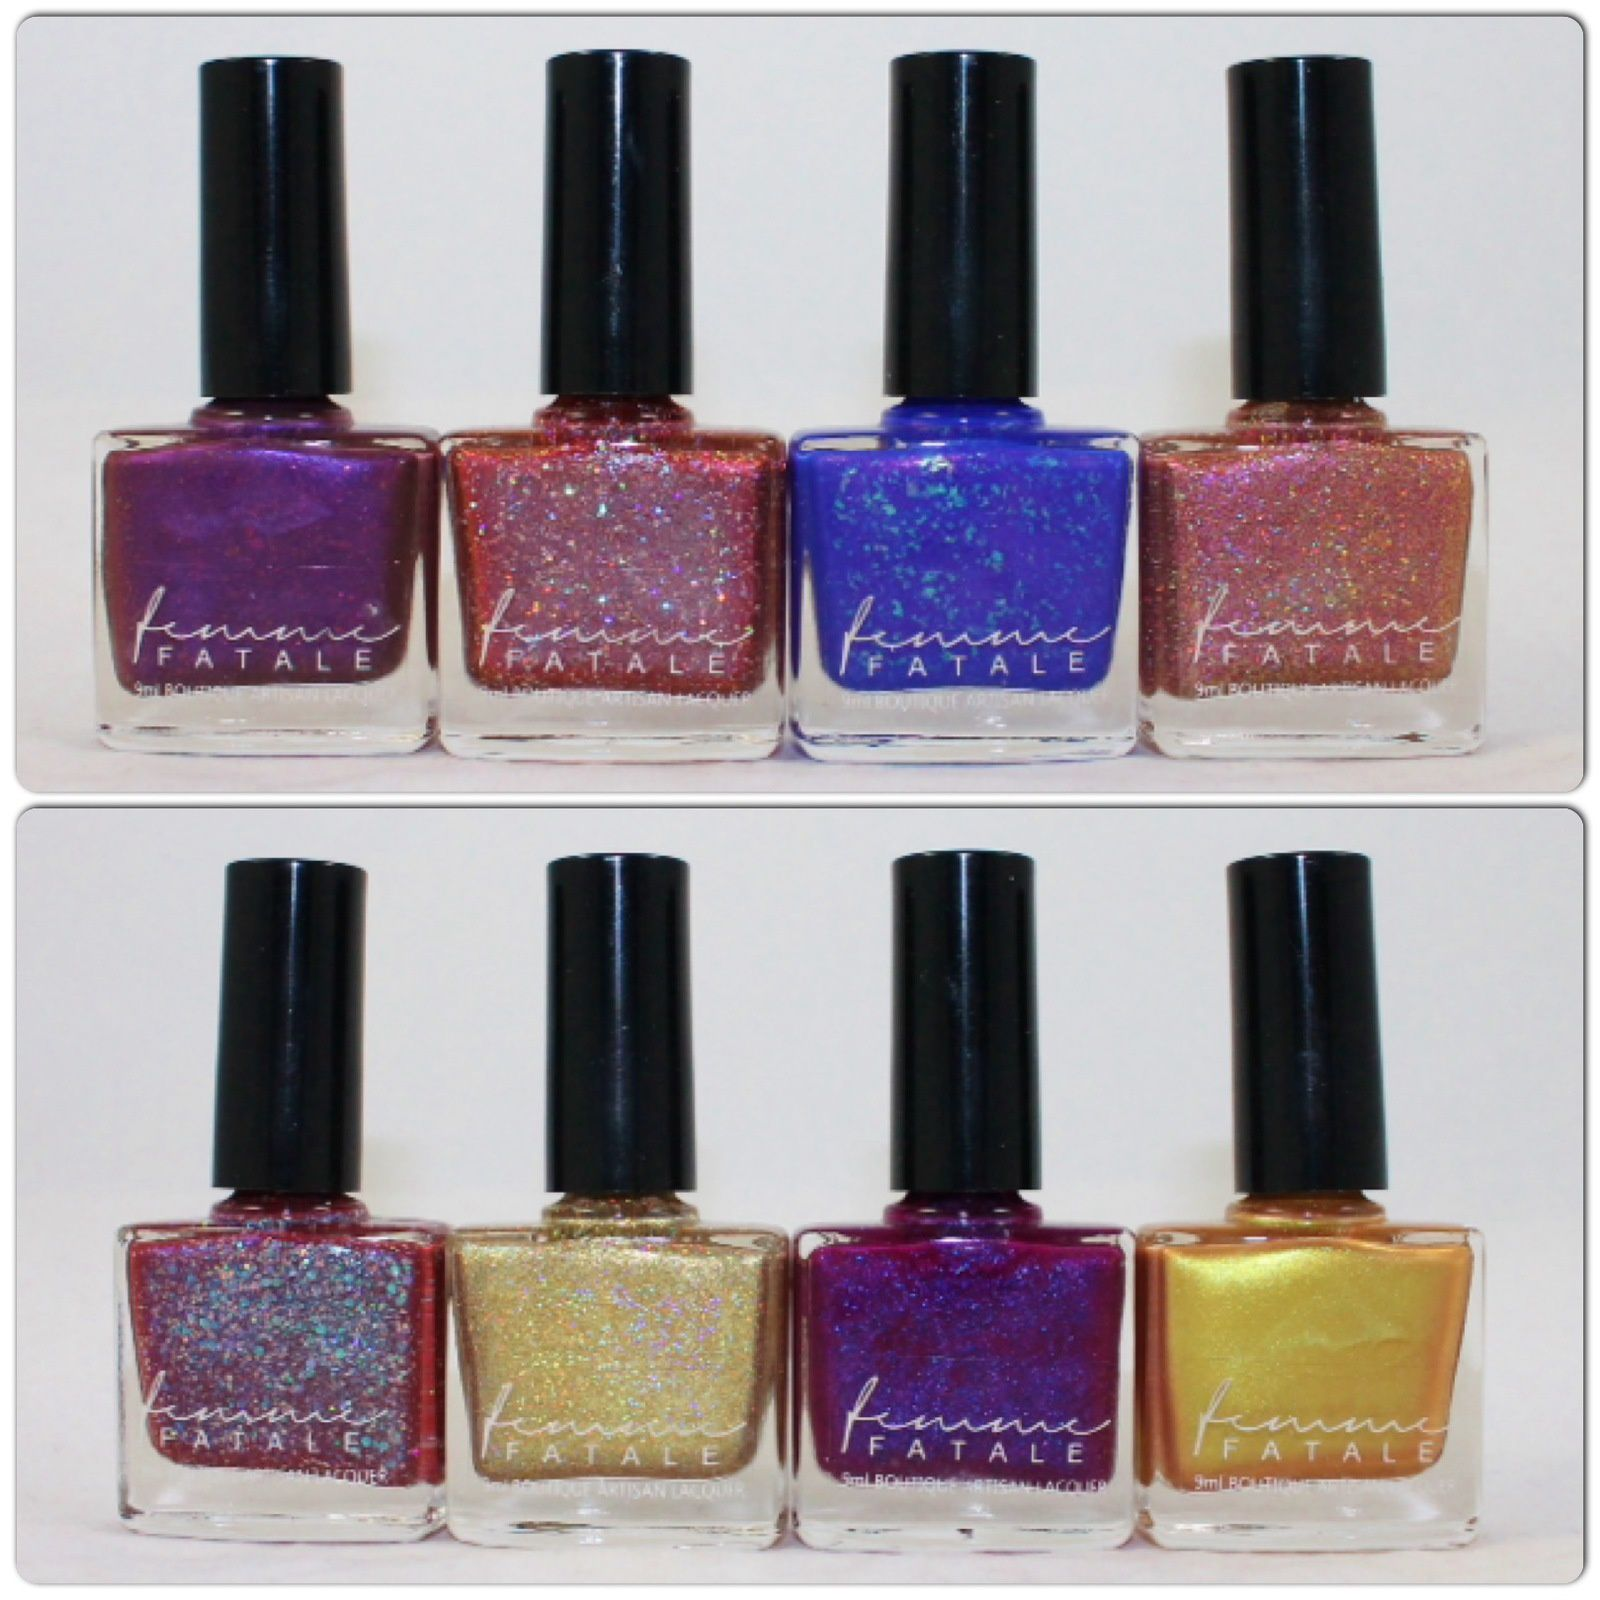 Femme Fatale Dune collection